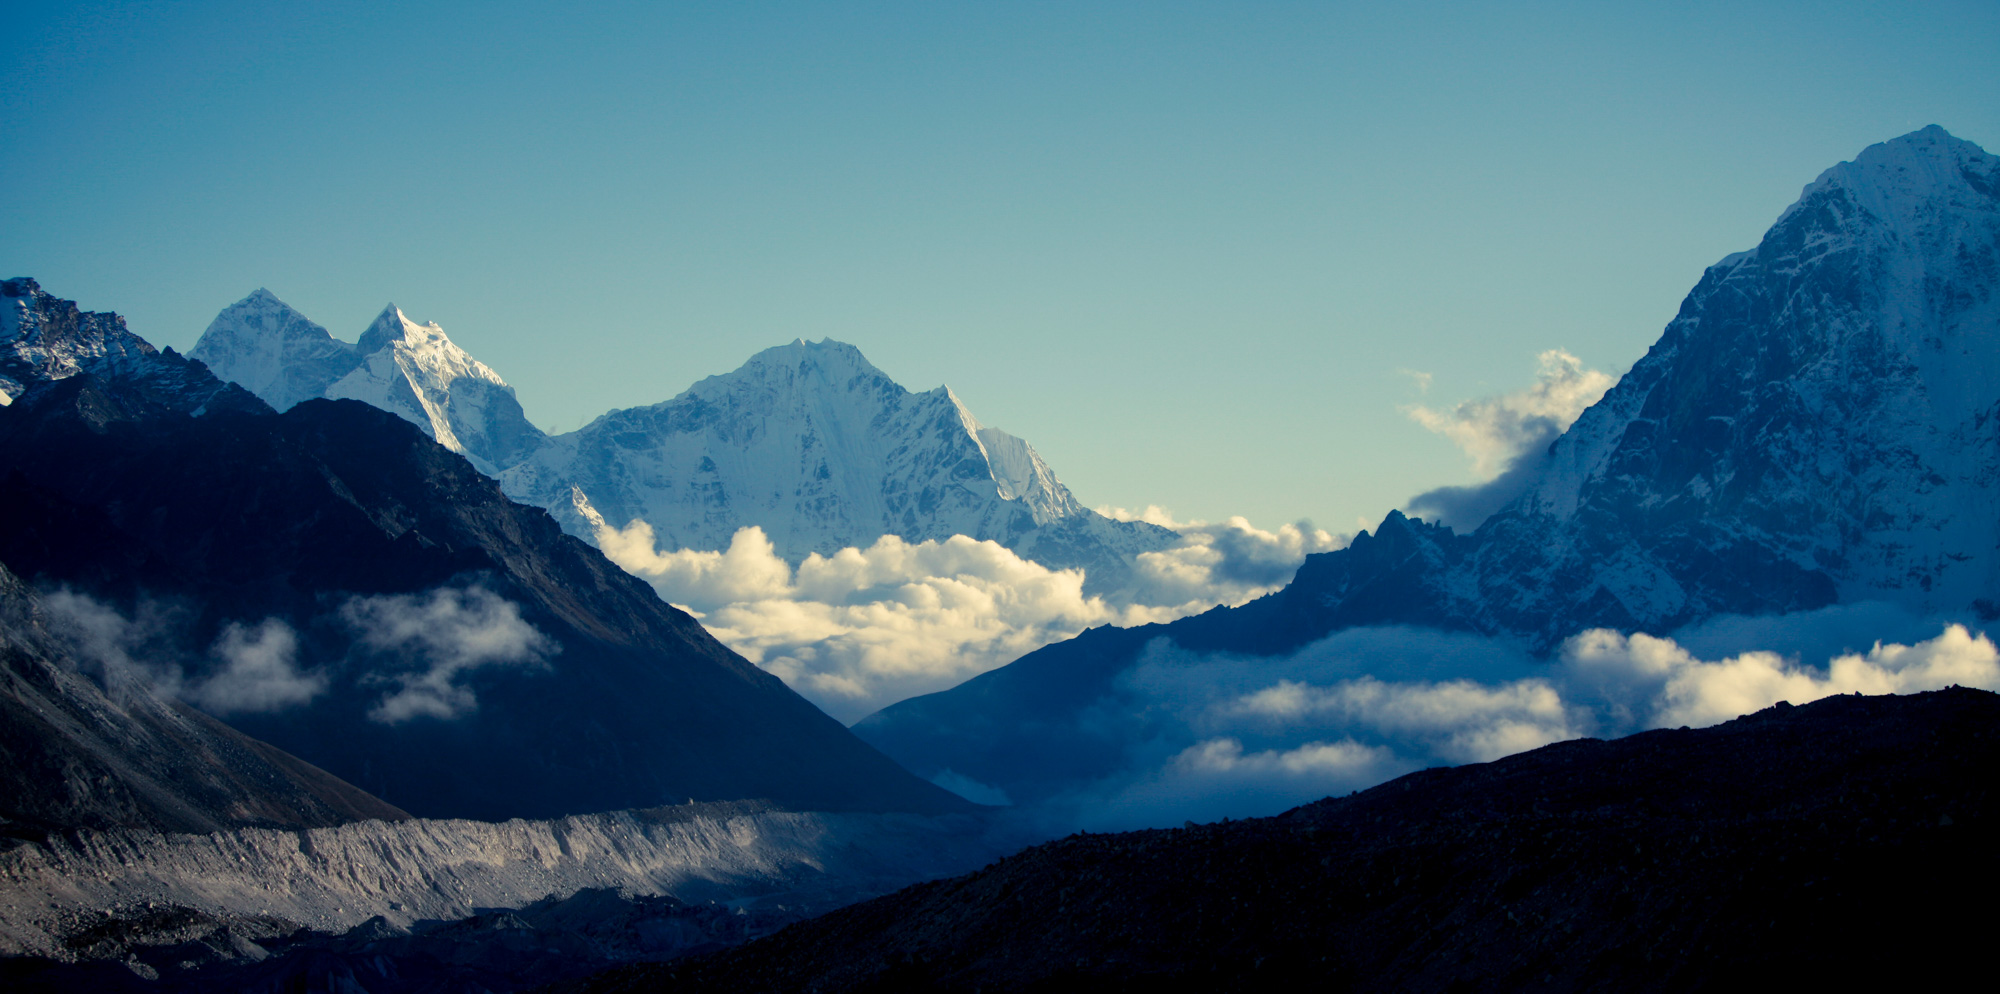 Clouds over mountains in Khumbu Valley in the Himalayas, Nepal | Travel Photography | Trekking | Nature Photography